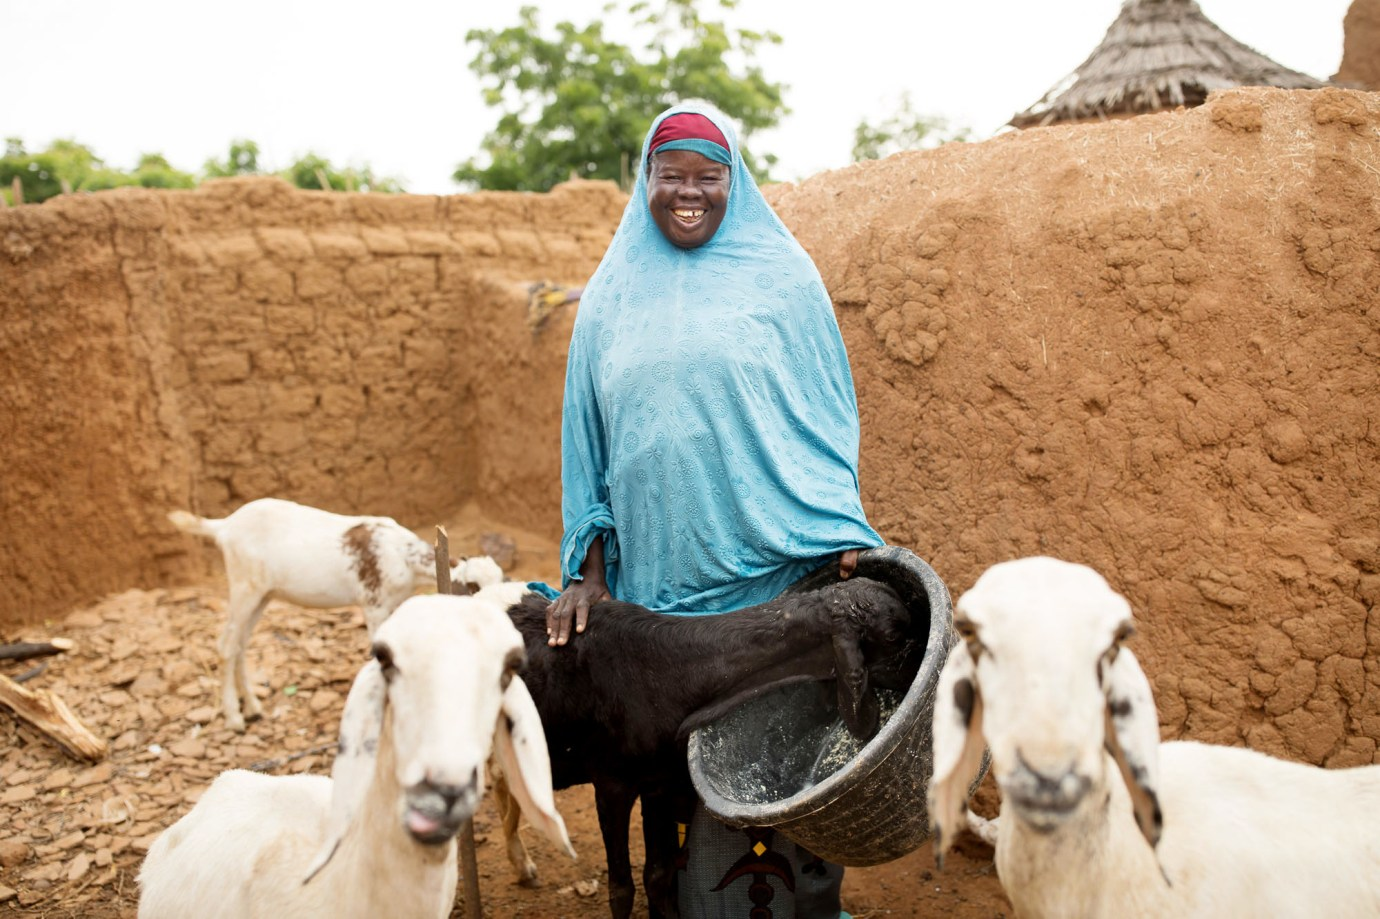 A small farmer feeds and waters her herd of sheep in Tahoua Region, Niger.